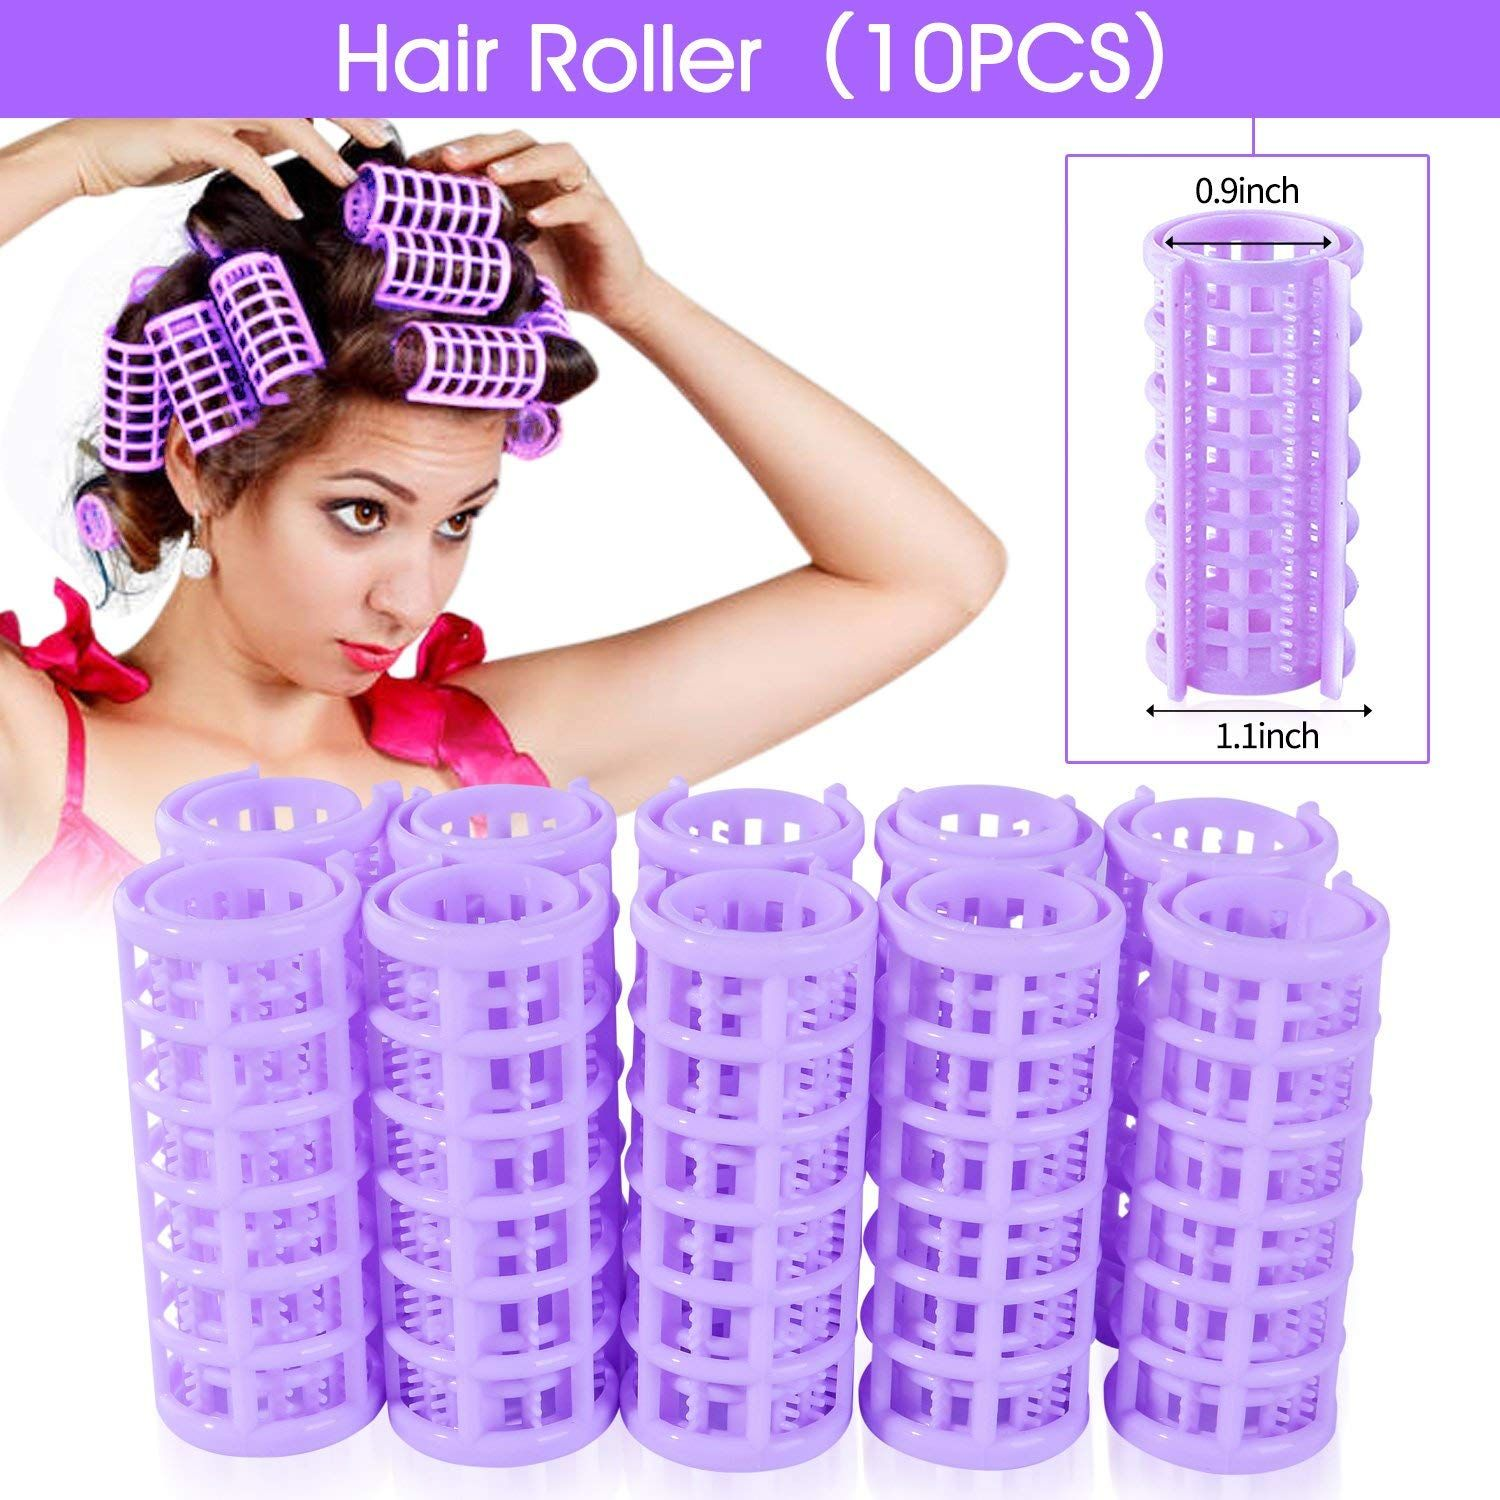 Yousha 10pcs Diy Home Small Plastic Hair Roller Pro Salon Hairdressing Curlers Clips For Women Ladies Purple Hair Rollers Plastic Hair Rollers Hair Curlers